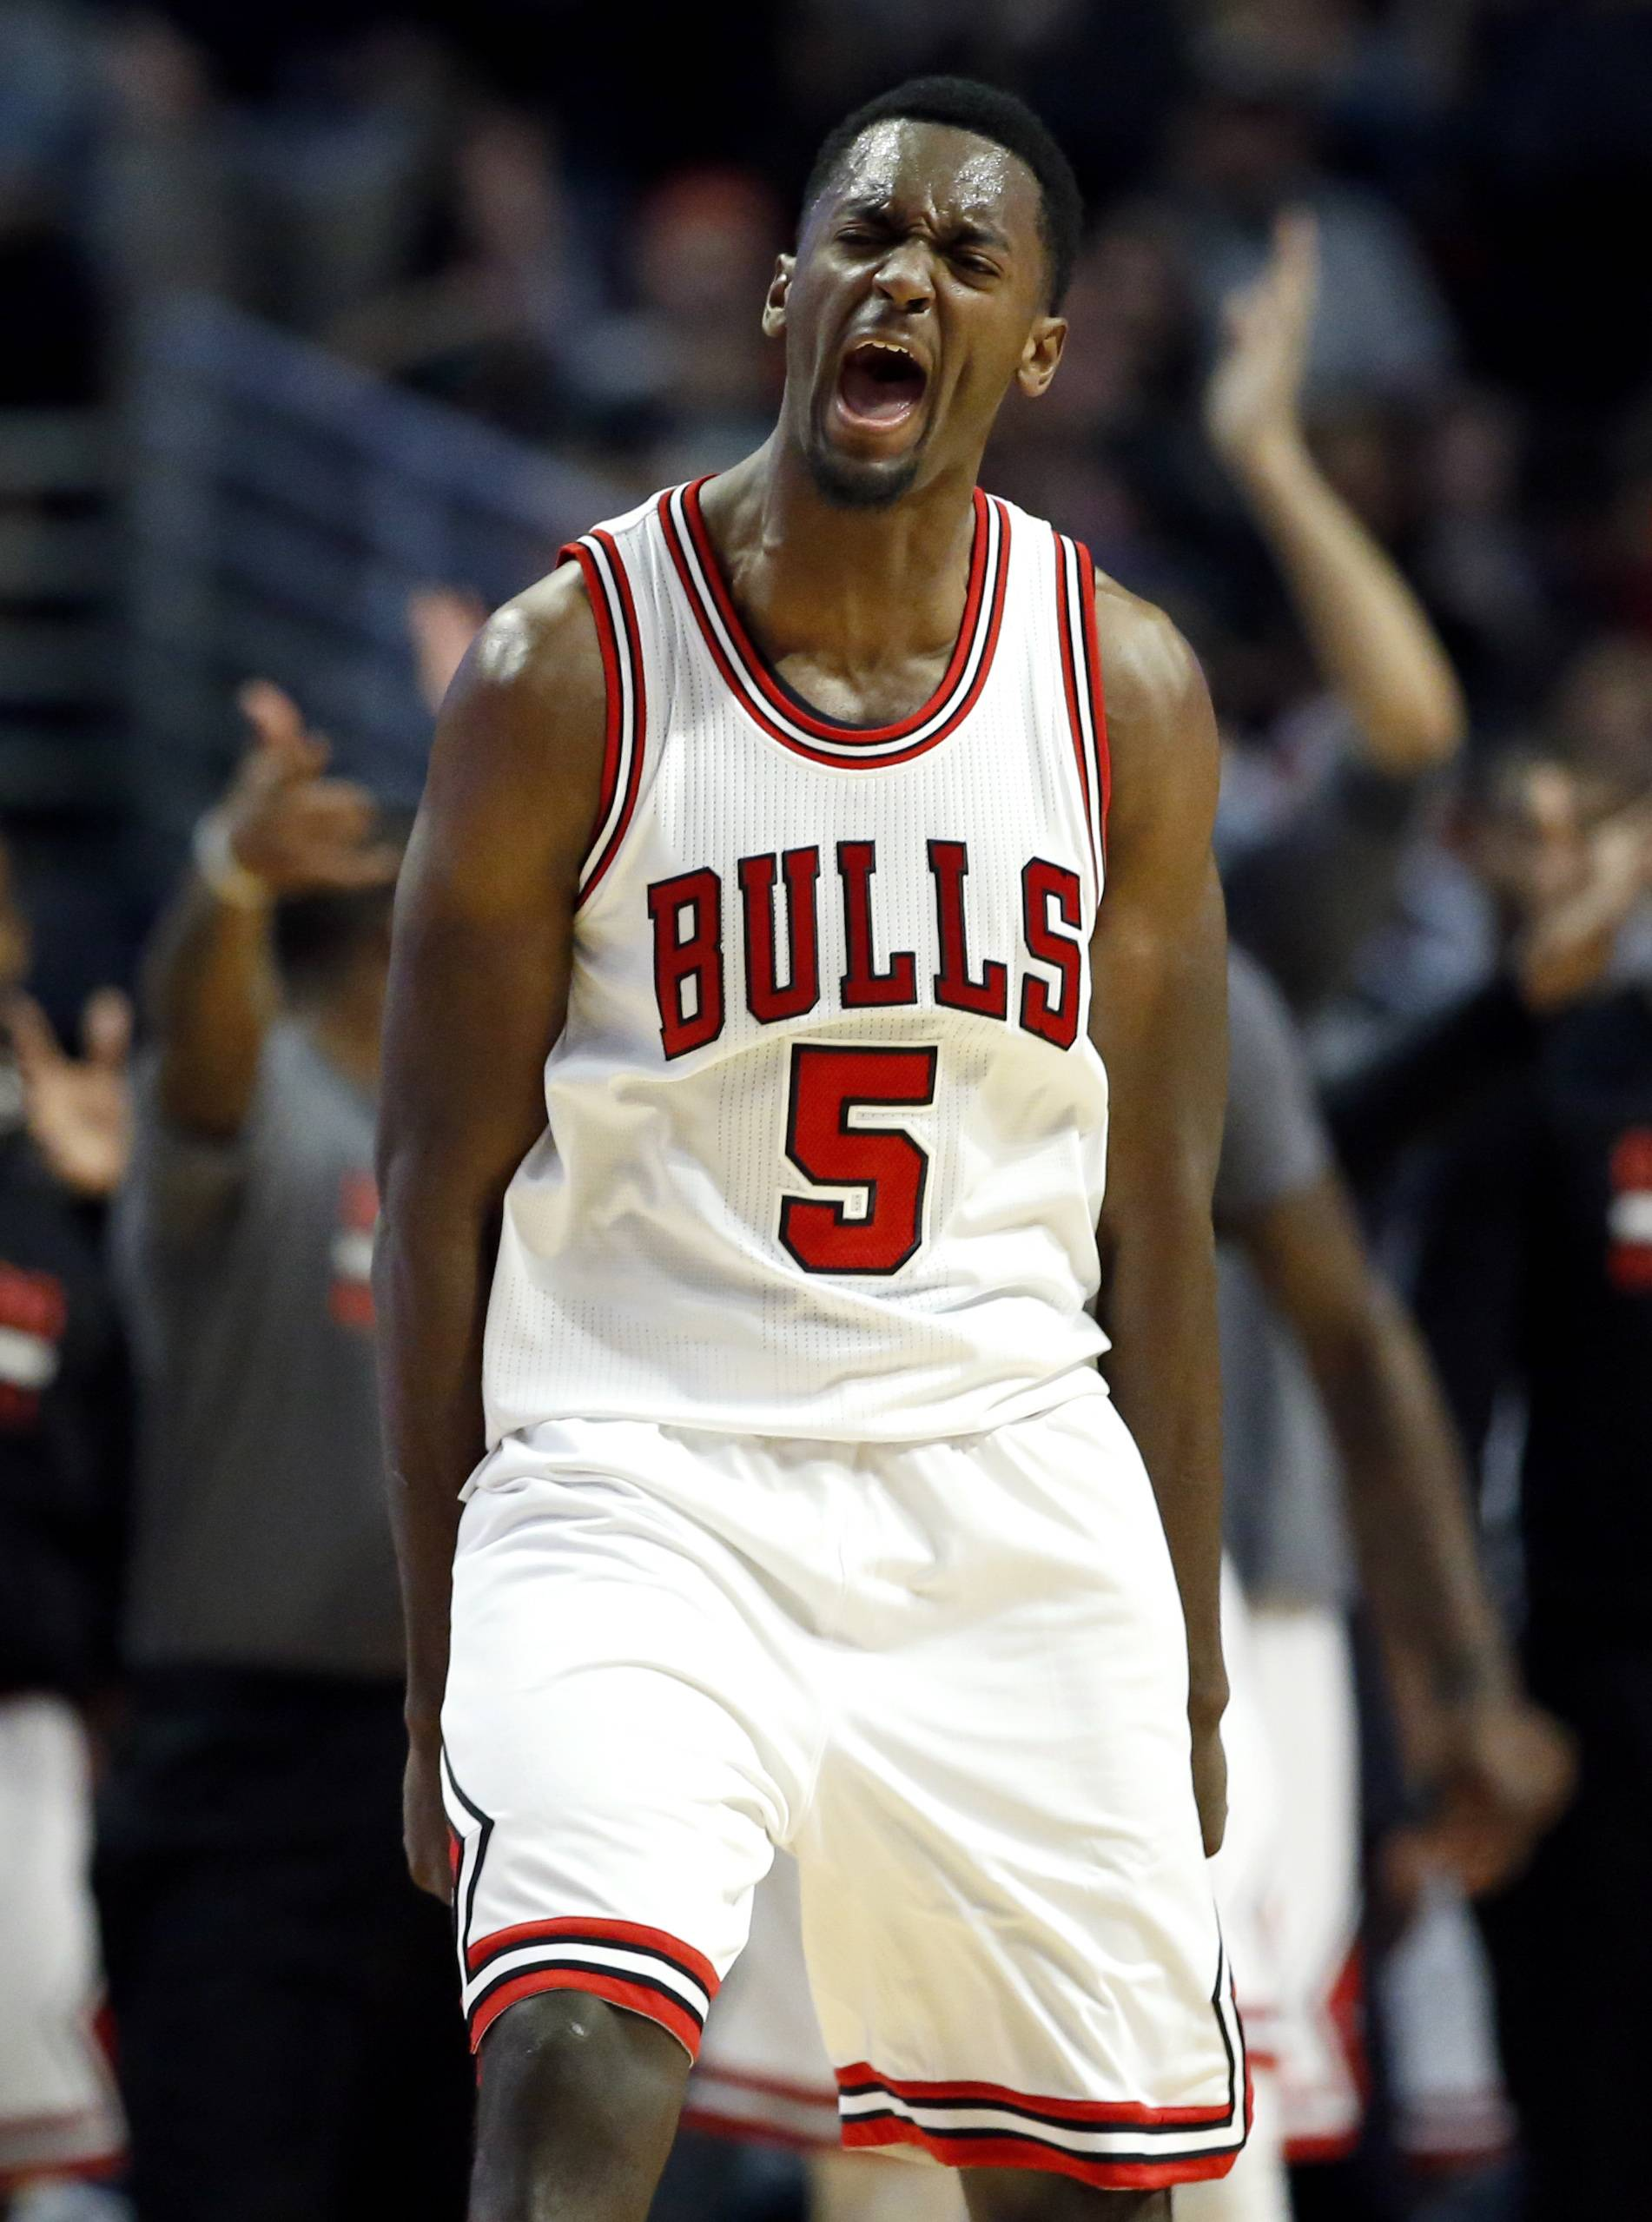 Chicago Bulls forward Bobby Portis is expected to play on Tuesday now that he has completed serving an eight-game suspension for an altercation that injured teammate Nikola Mirotic.